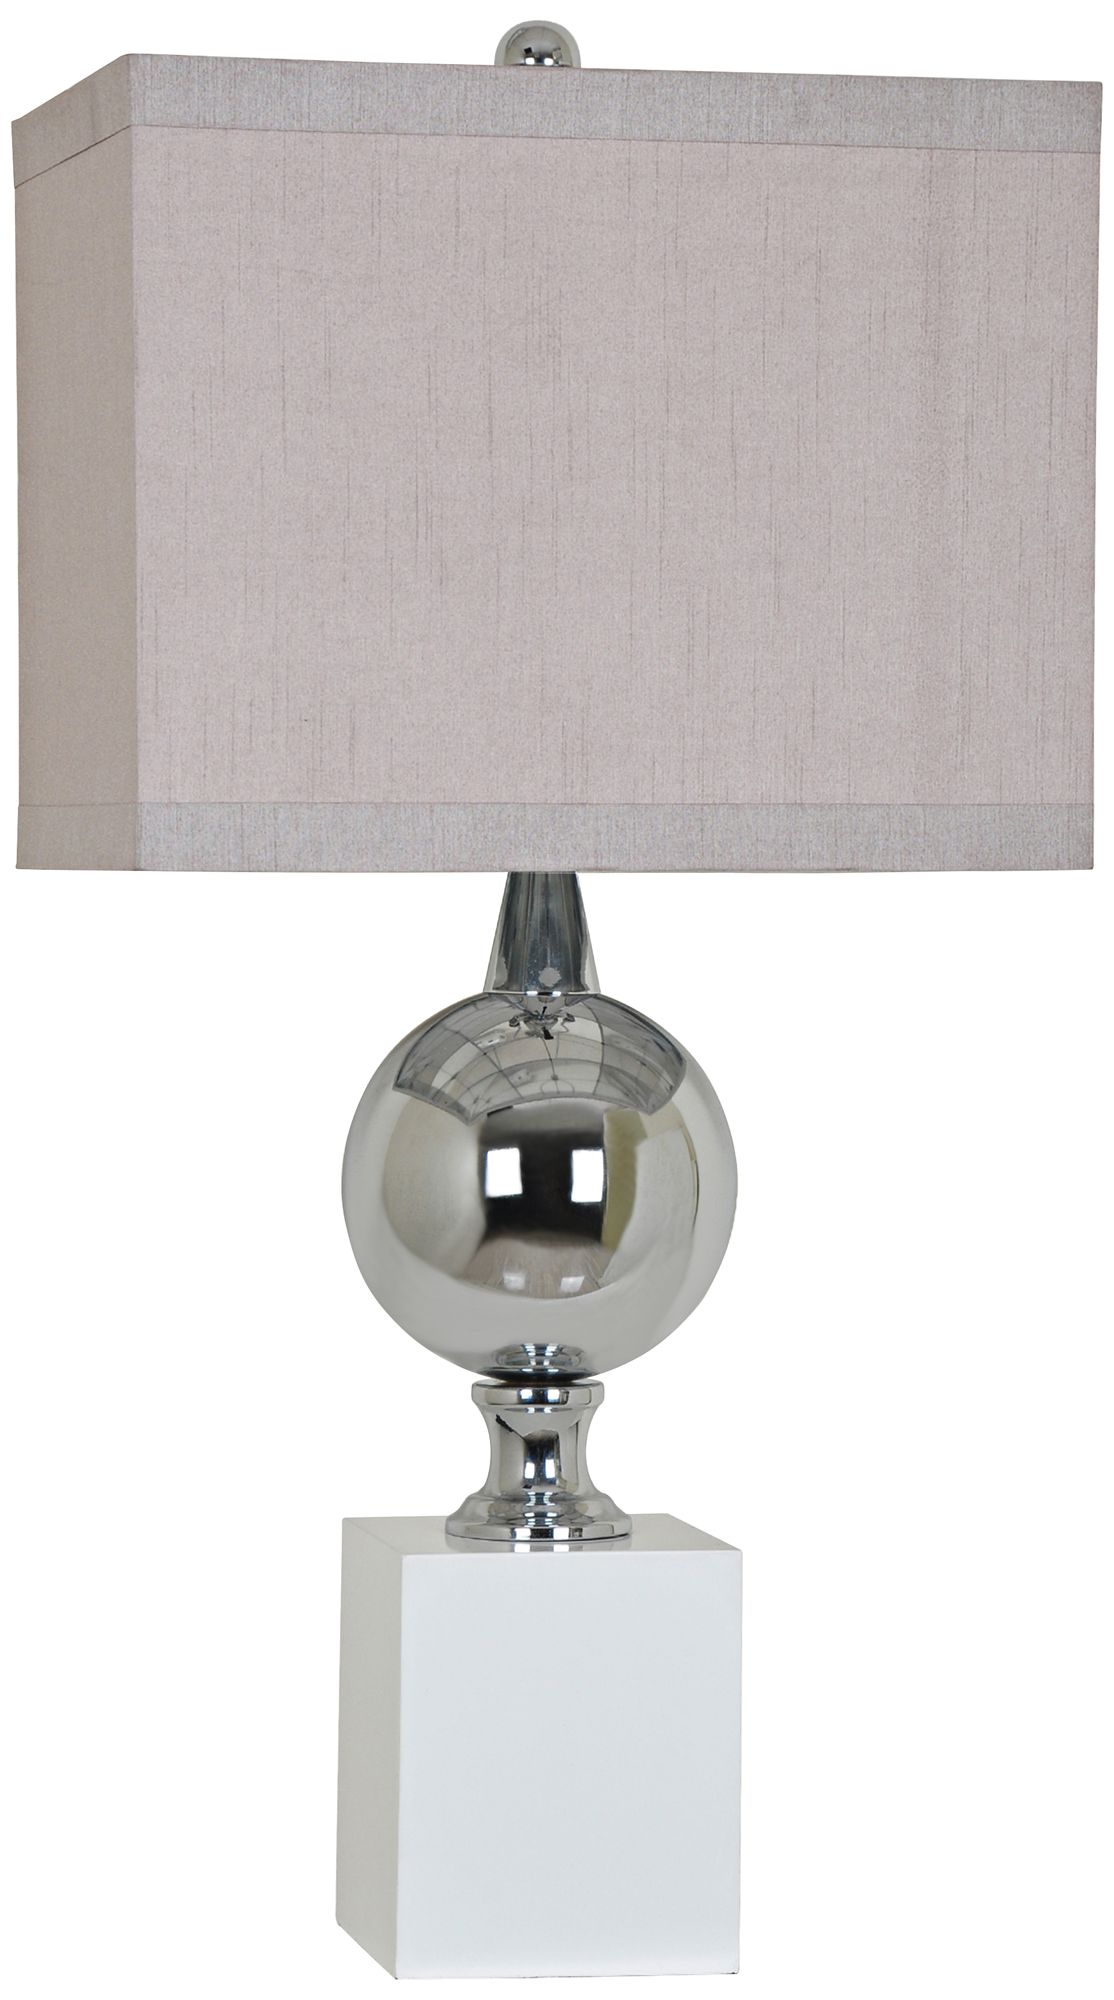 Crestview Collection Palladium Shiny Nickel Metal Table Lamp